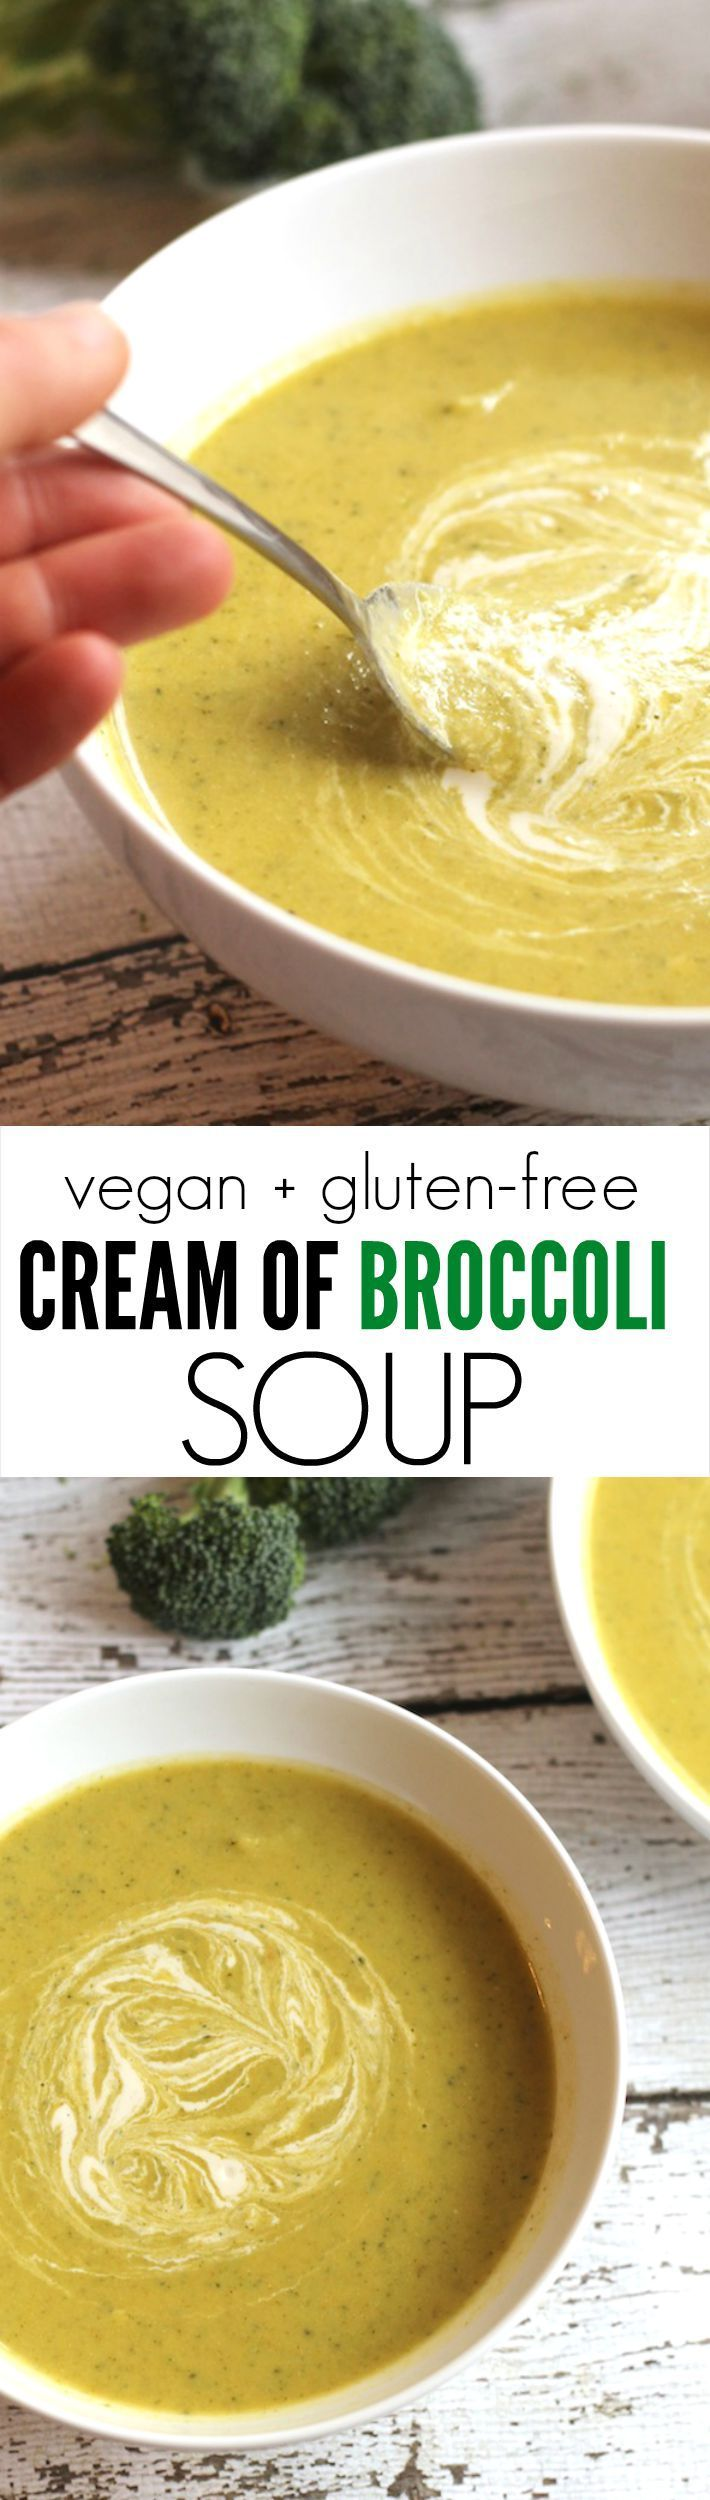 The creamiest broccoli soup there ever was...completely healthy, guilt-free, and vegan!